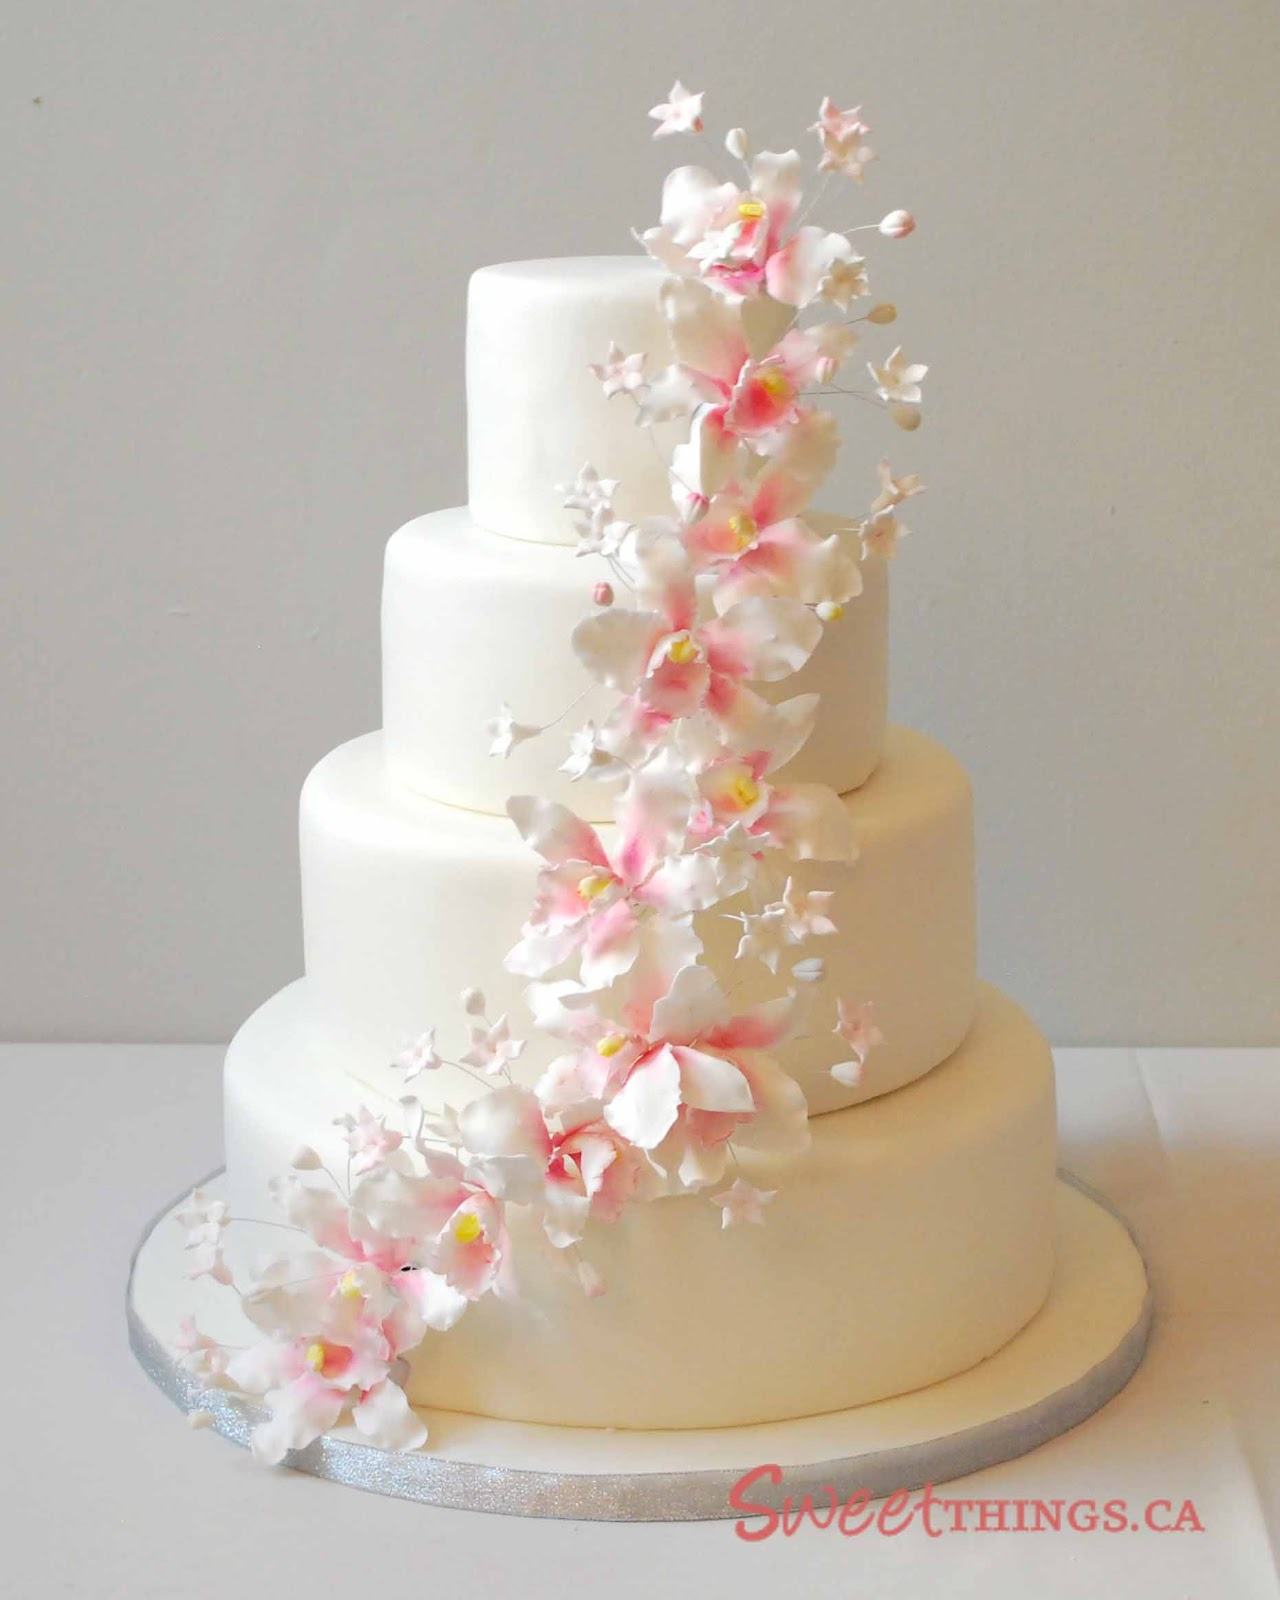 Cake Designs And Images : SweetThings: 4-tier Wedding Cake with Sugarpaste Orchids